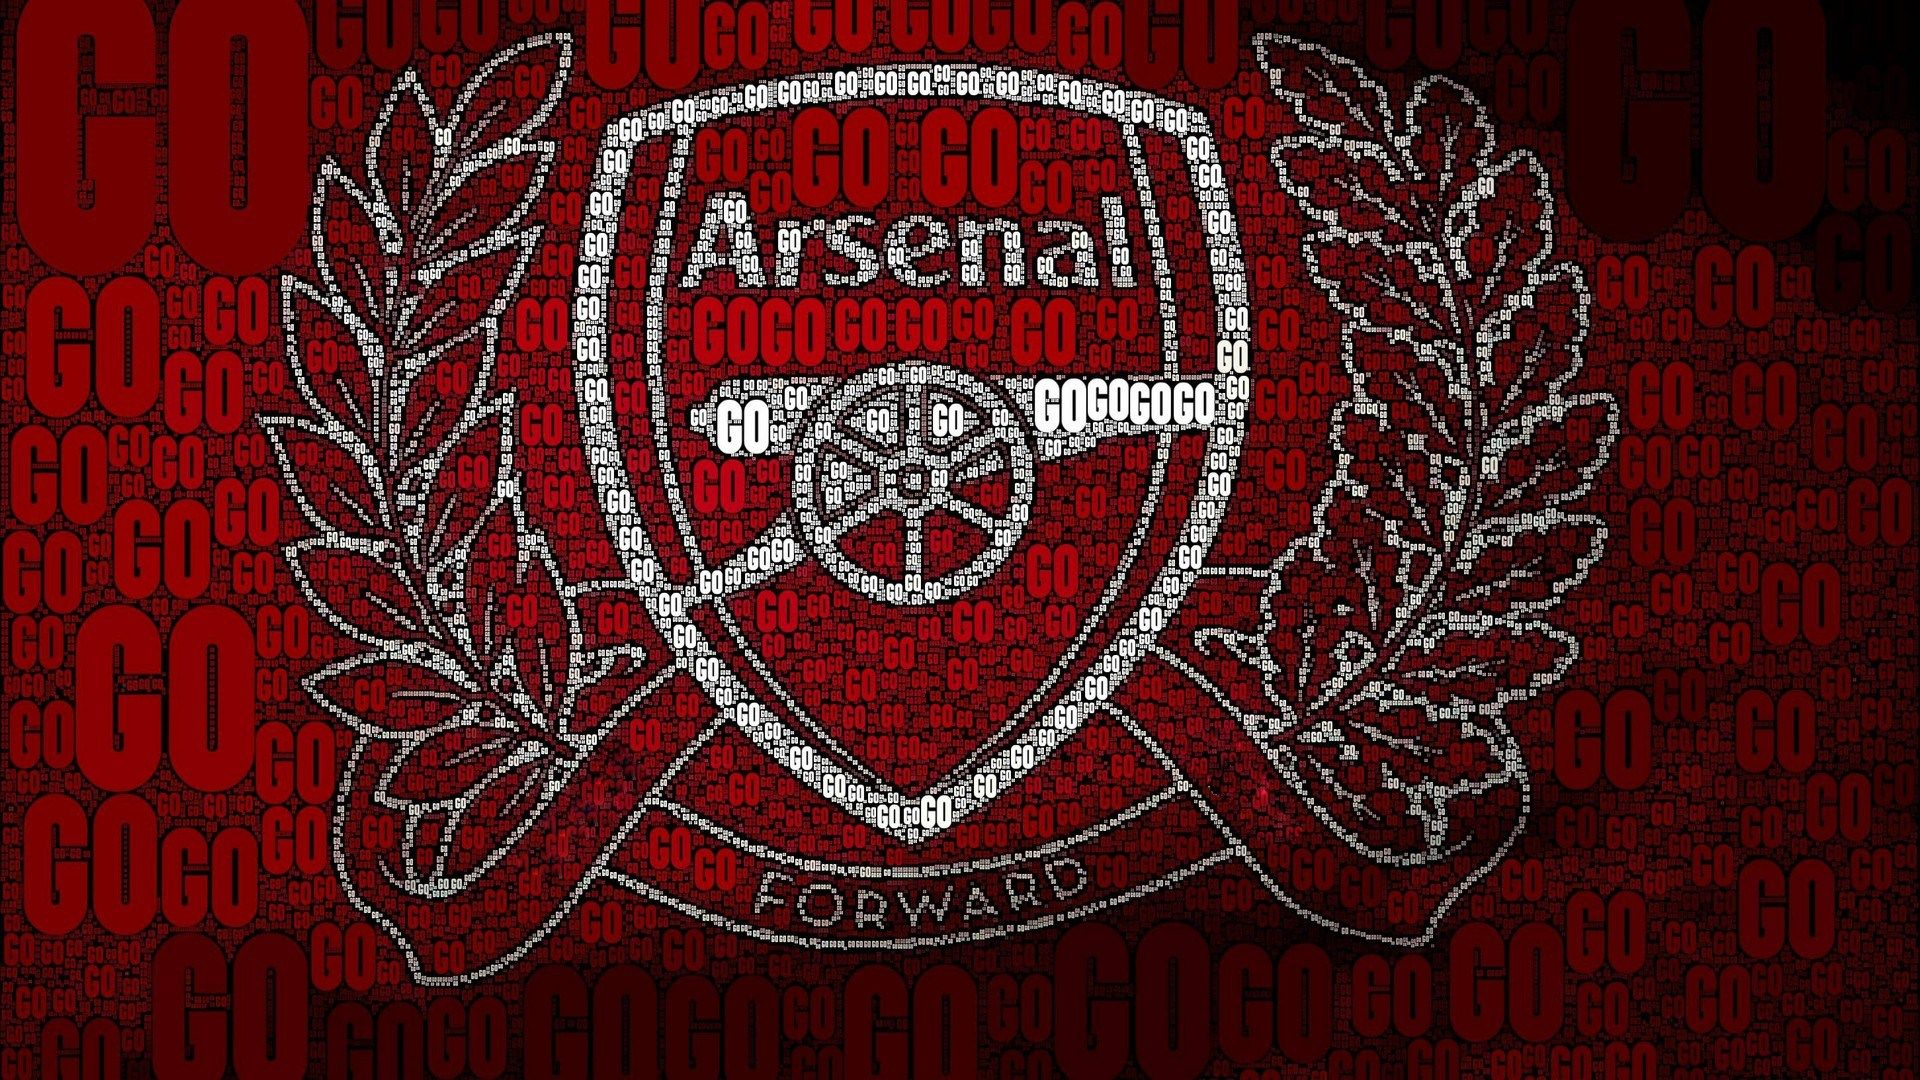 Arsenal Iphone Wallpaper Hd Arsenal Logo Hd Wallpaper For Mobile